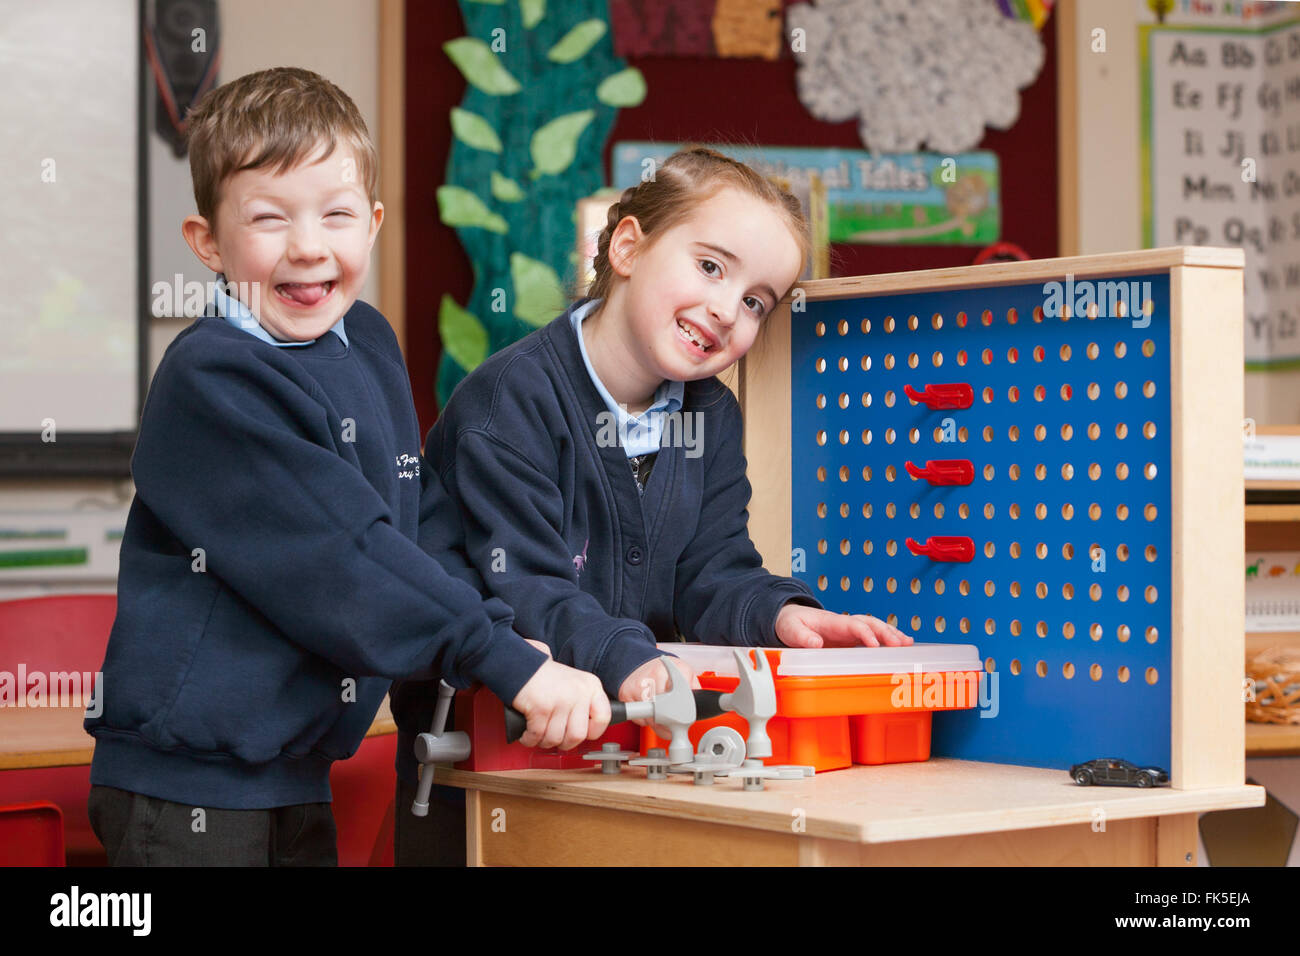 Pupils in school uniform at a Primary School in the UK playing with toy hand tools. - Stock Image